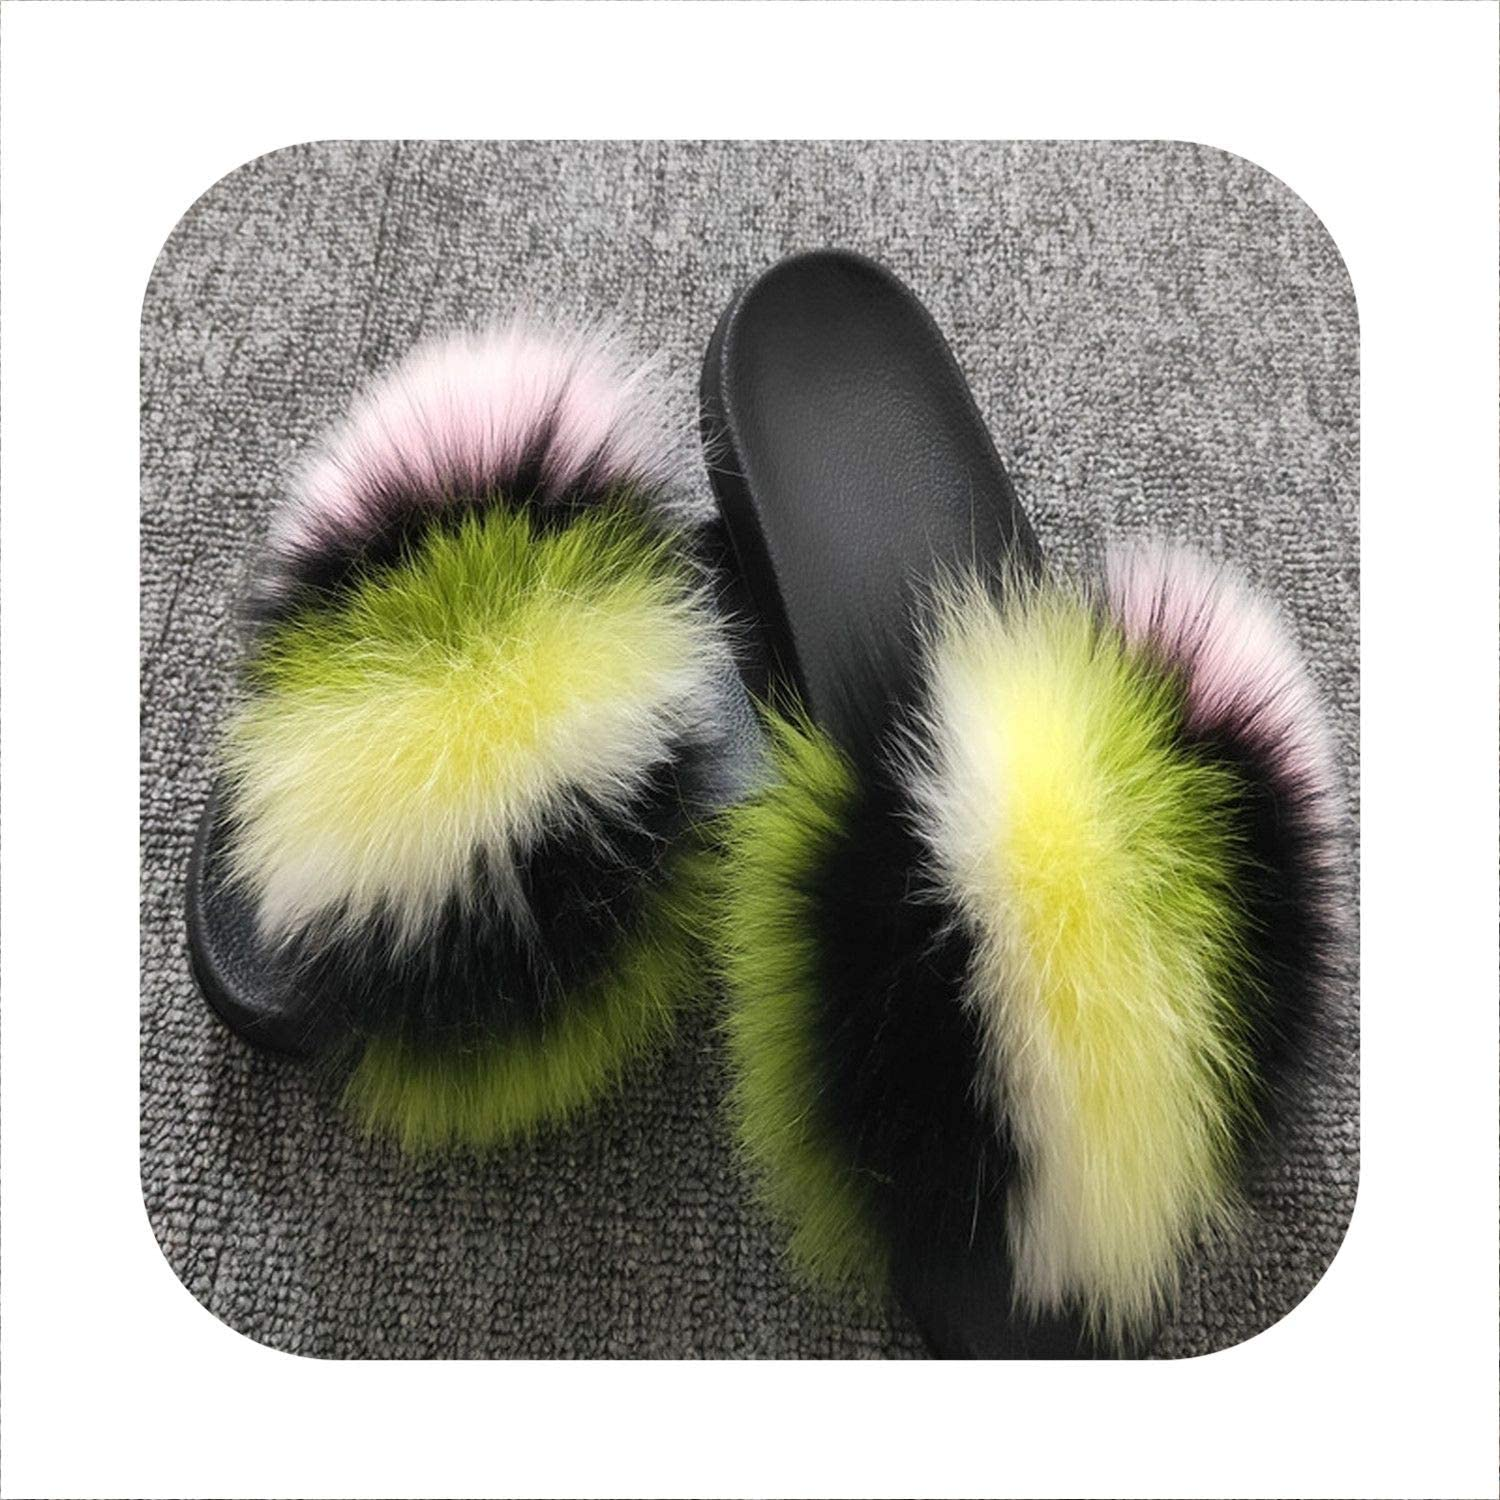 Sunjinjing 31 colors Women's Summer Fox Fur Slipper Flat Beach Sandals Hot Female shoes Plush Furry Slides Outdoor shoes Lady shoes